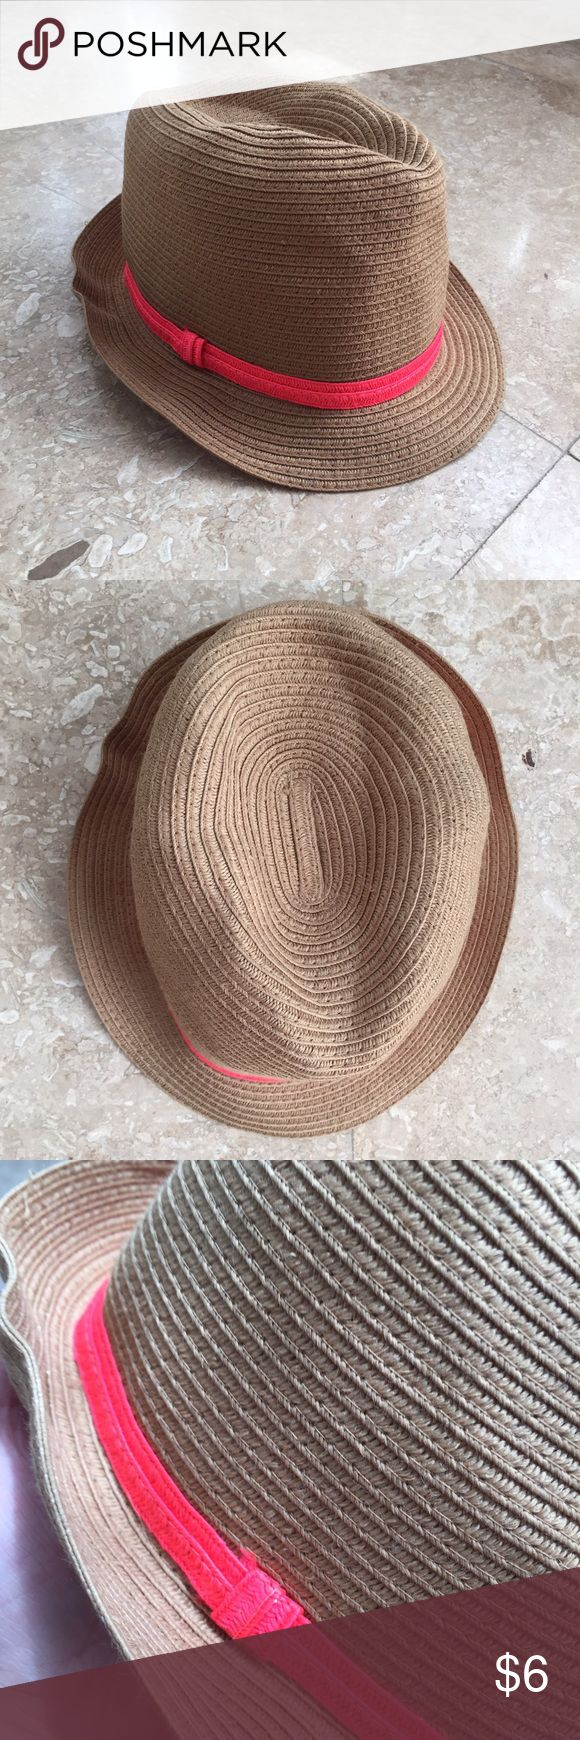 Fedora, Beach Hat, Brown and Neon Pink Stripe This fedora has is soft which means its collapsible and easy to pack! Hat is very comfy and minor wear. Looks great. Target Accessories Hats